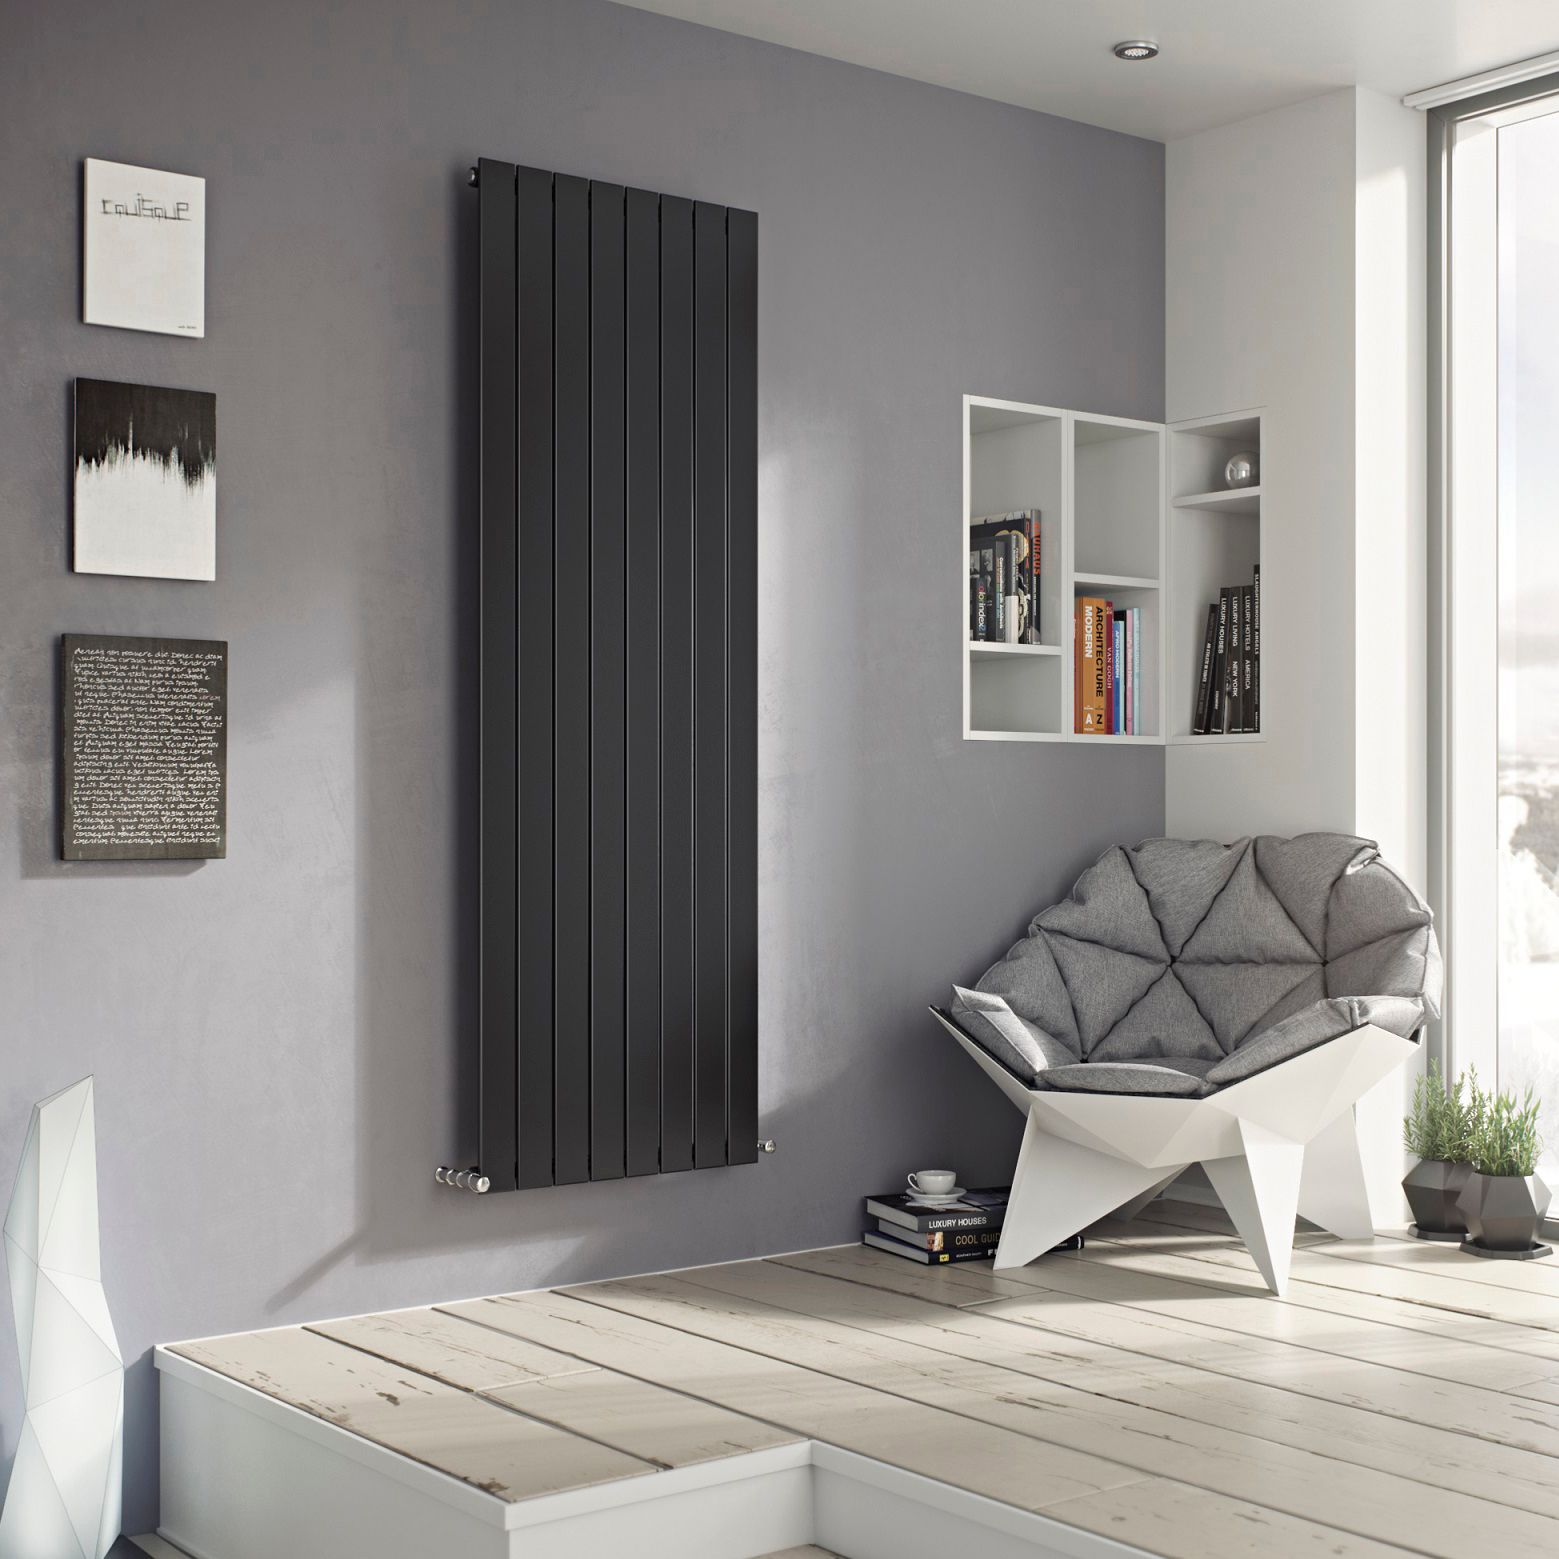 Ximax Vertirad Vertical/Horizontal Radiator Anthracite (H)1200 mm